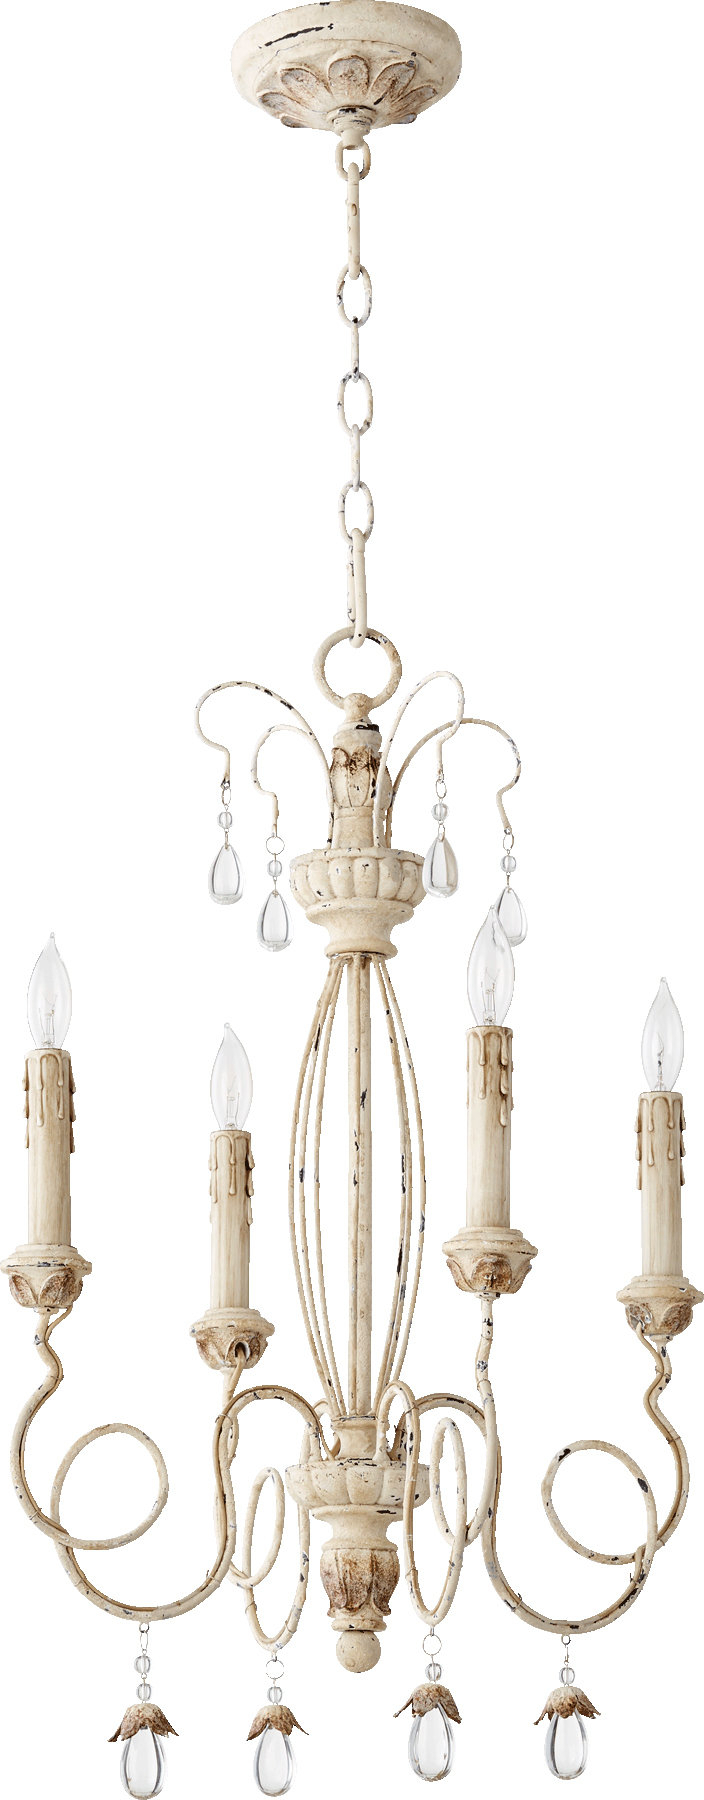 Baxley 4 Light Candle Style Chandelier Within Most Recent Bennington 4 Light Candle Style Chandeliers (Gallery 14 of 20)